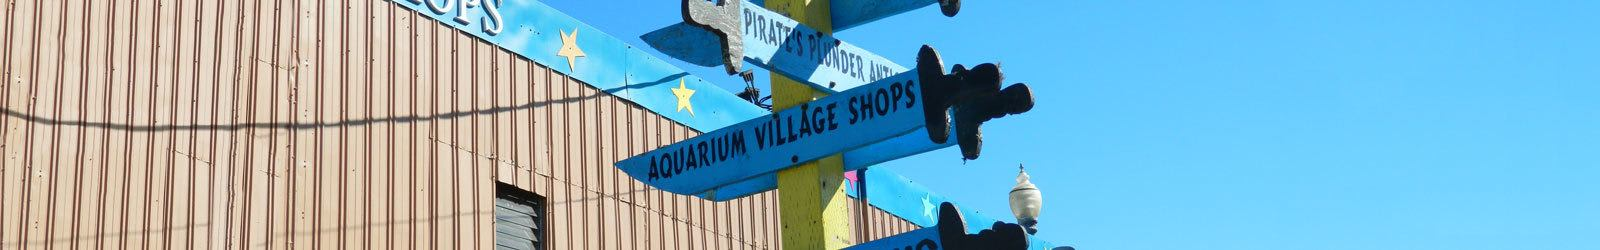 Photos of Aquarium Village